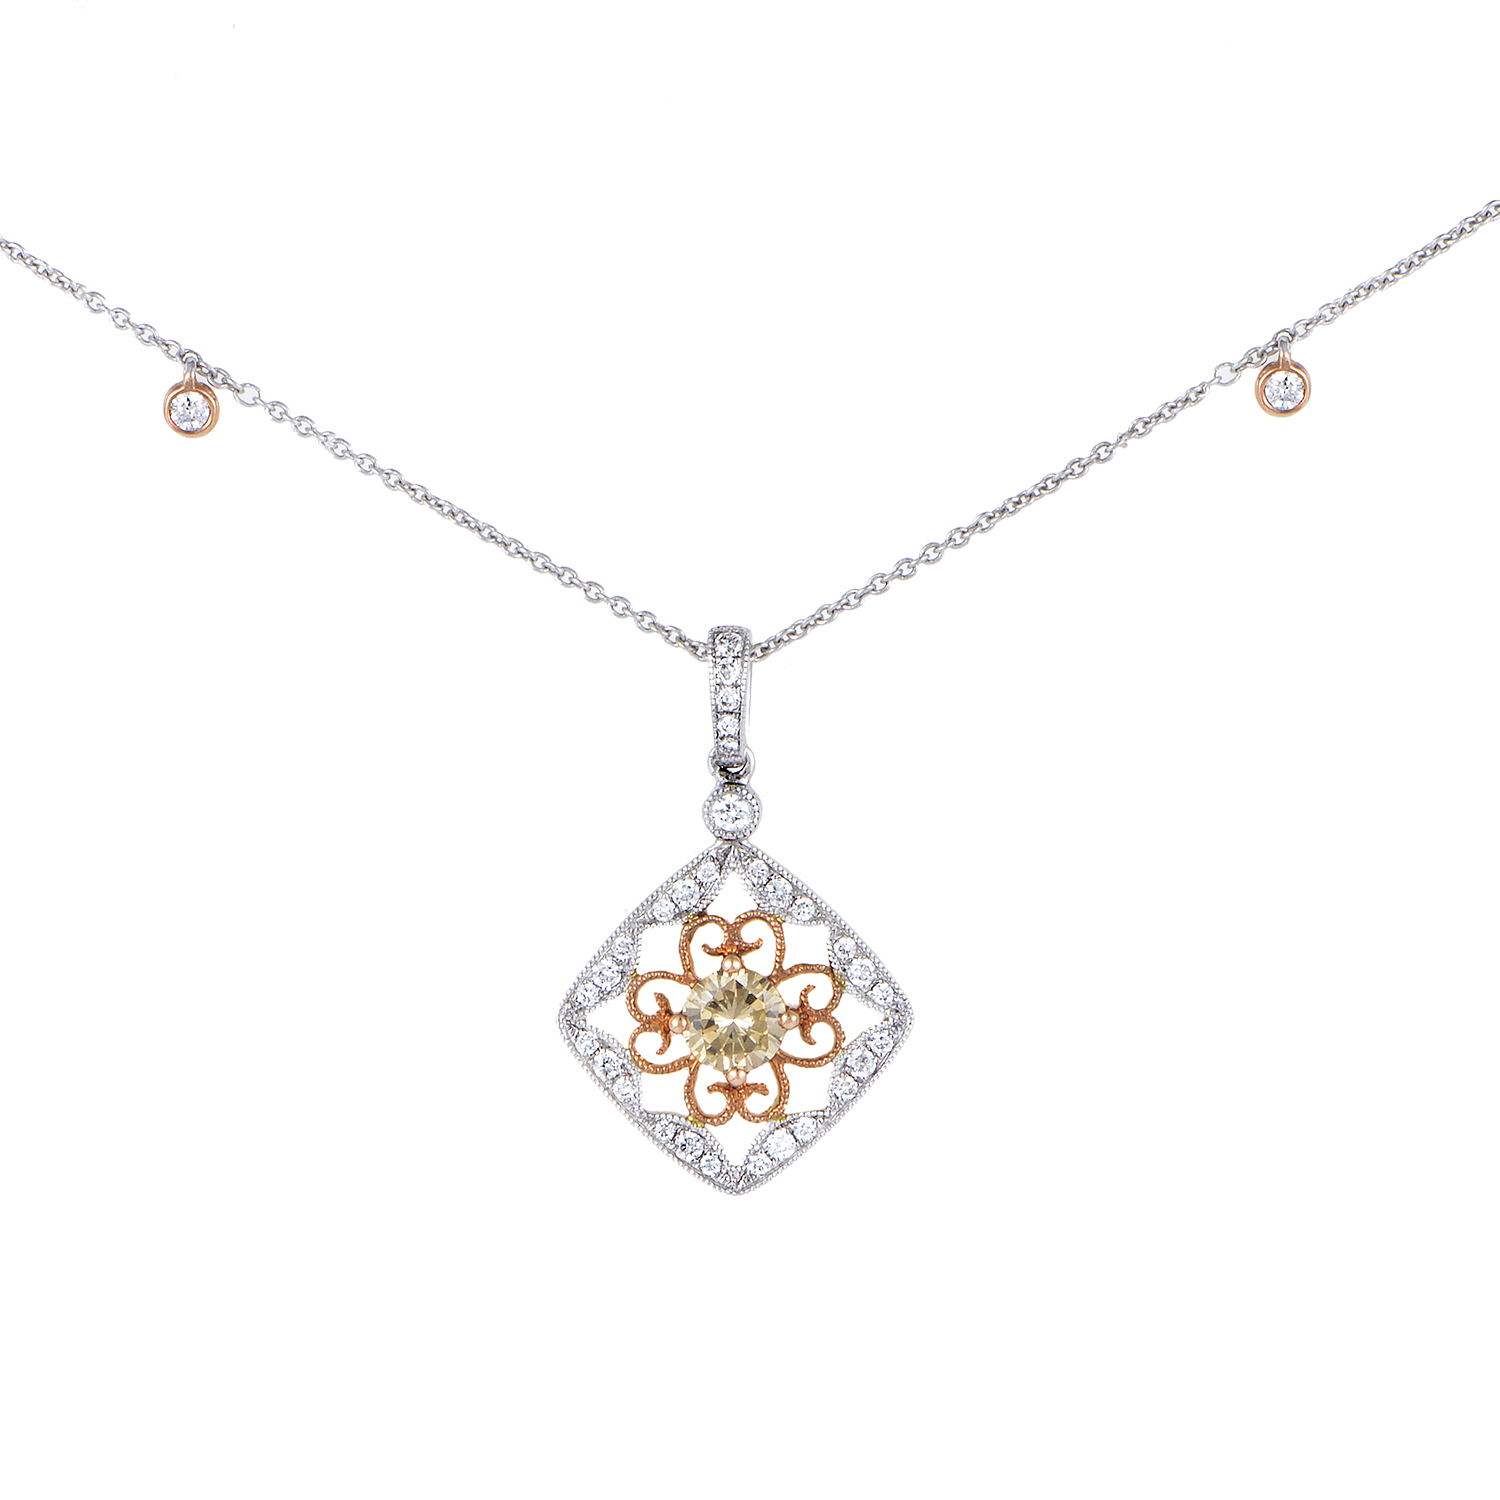 Women's 18K Multi-Tone Gold Floral Diamond Pendant Necklace KEDF8942NUBZ/RZ